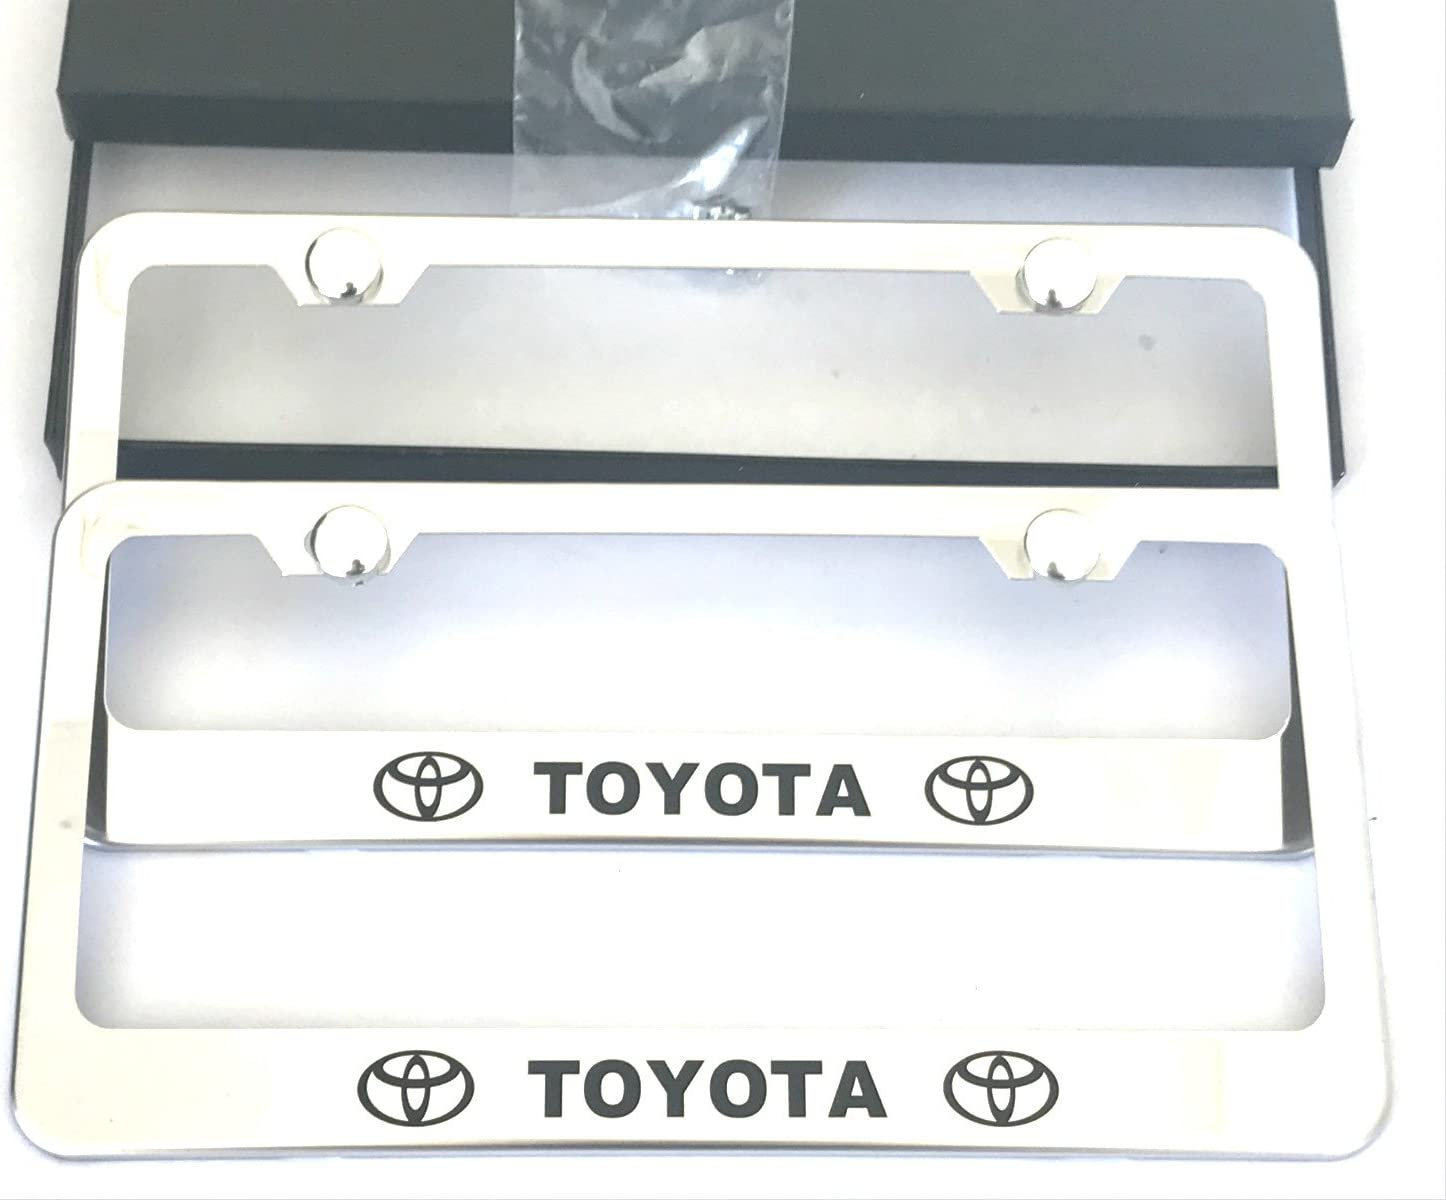 2-Black MAX WHOLESALE Stainless Steel License Plate Frame Rust Free With Bolt Caps For Toyota Cover